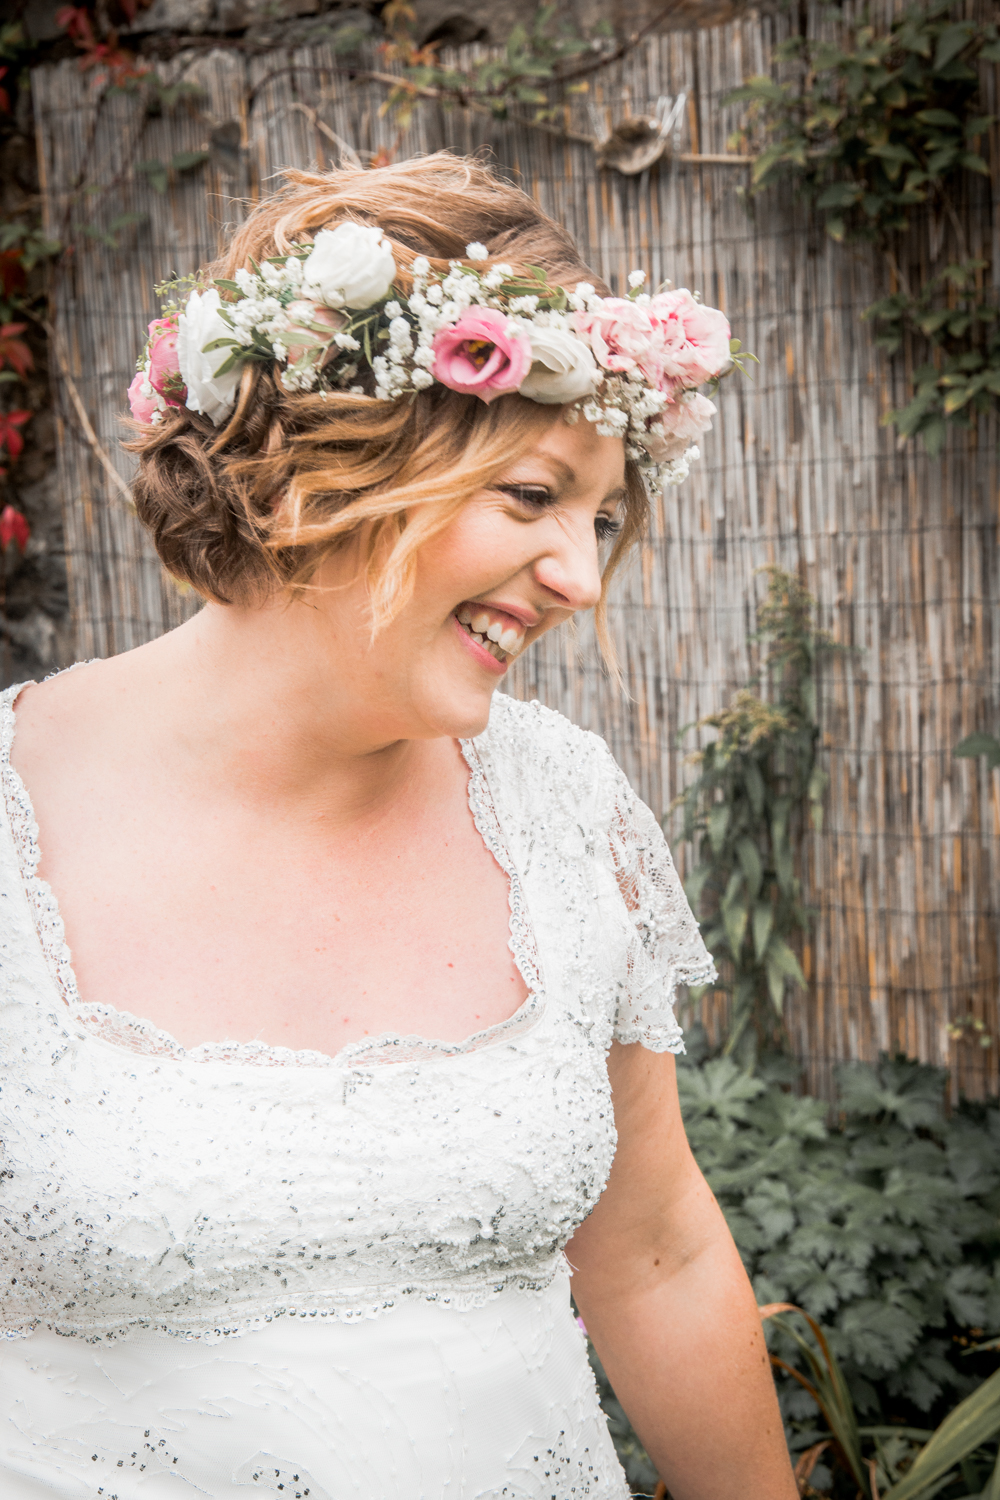 Best wedding photographer in Swansea and the Gower